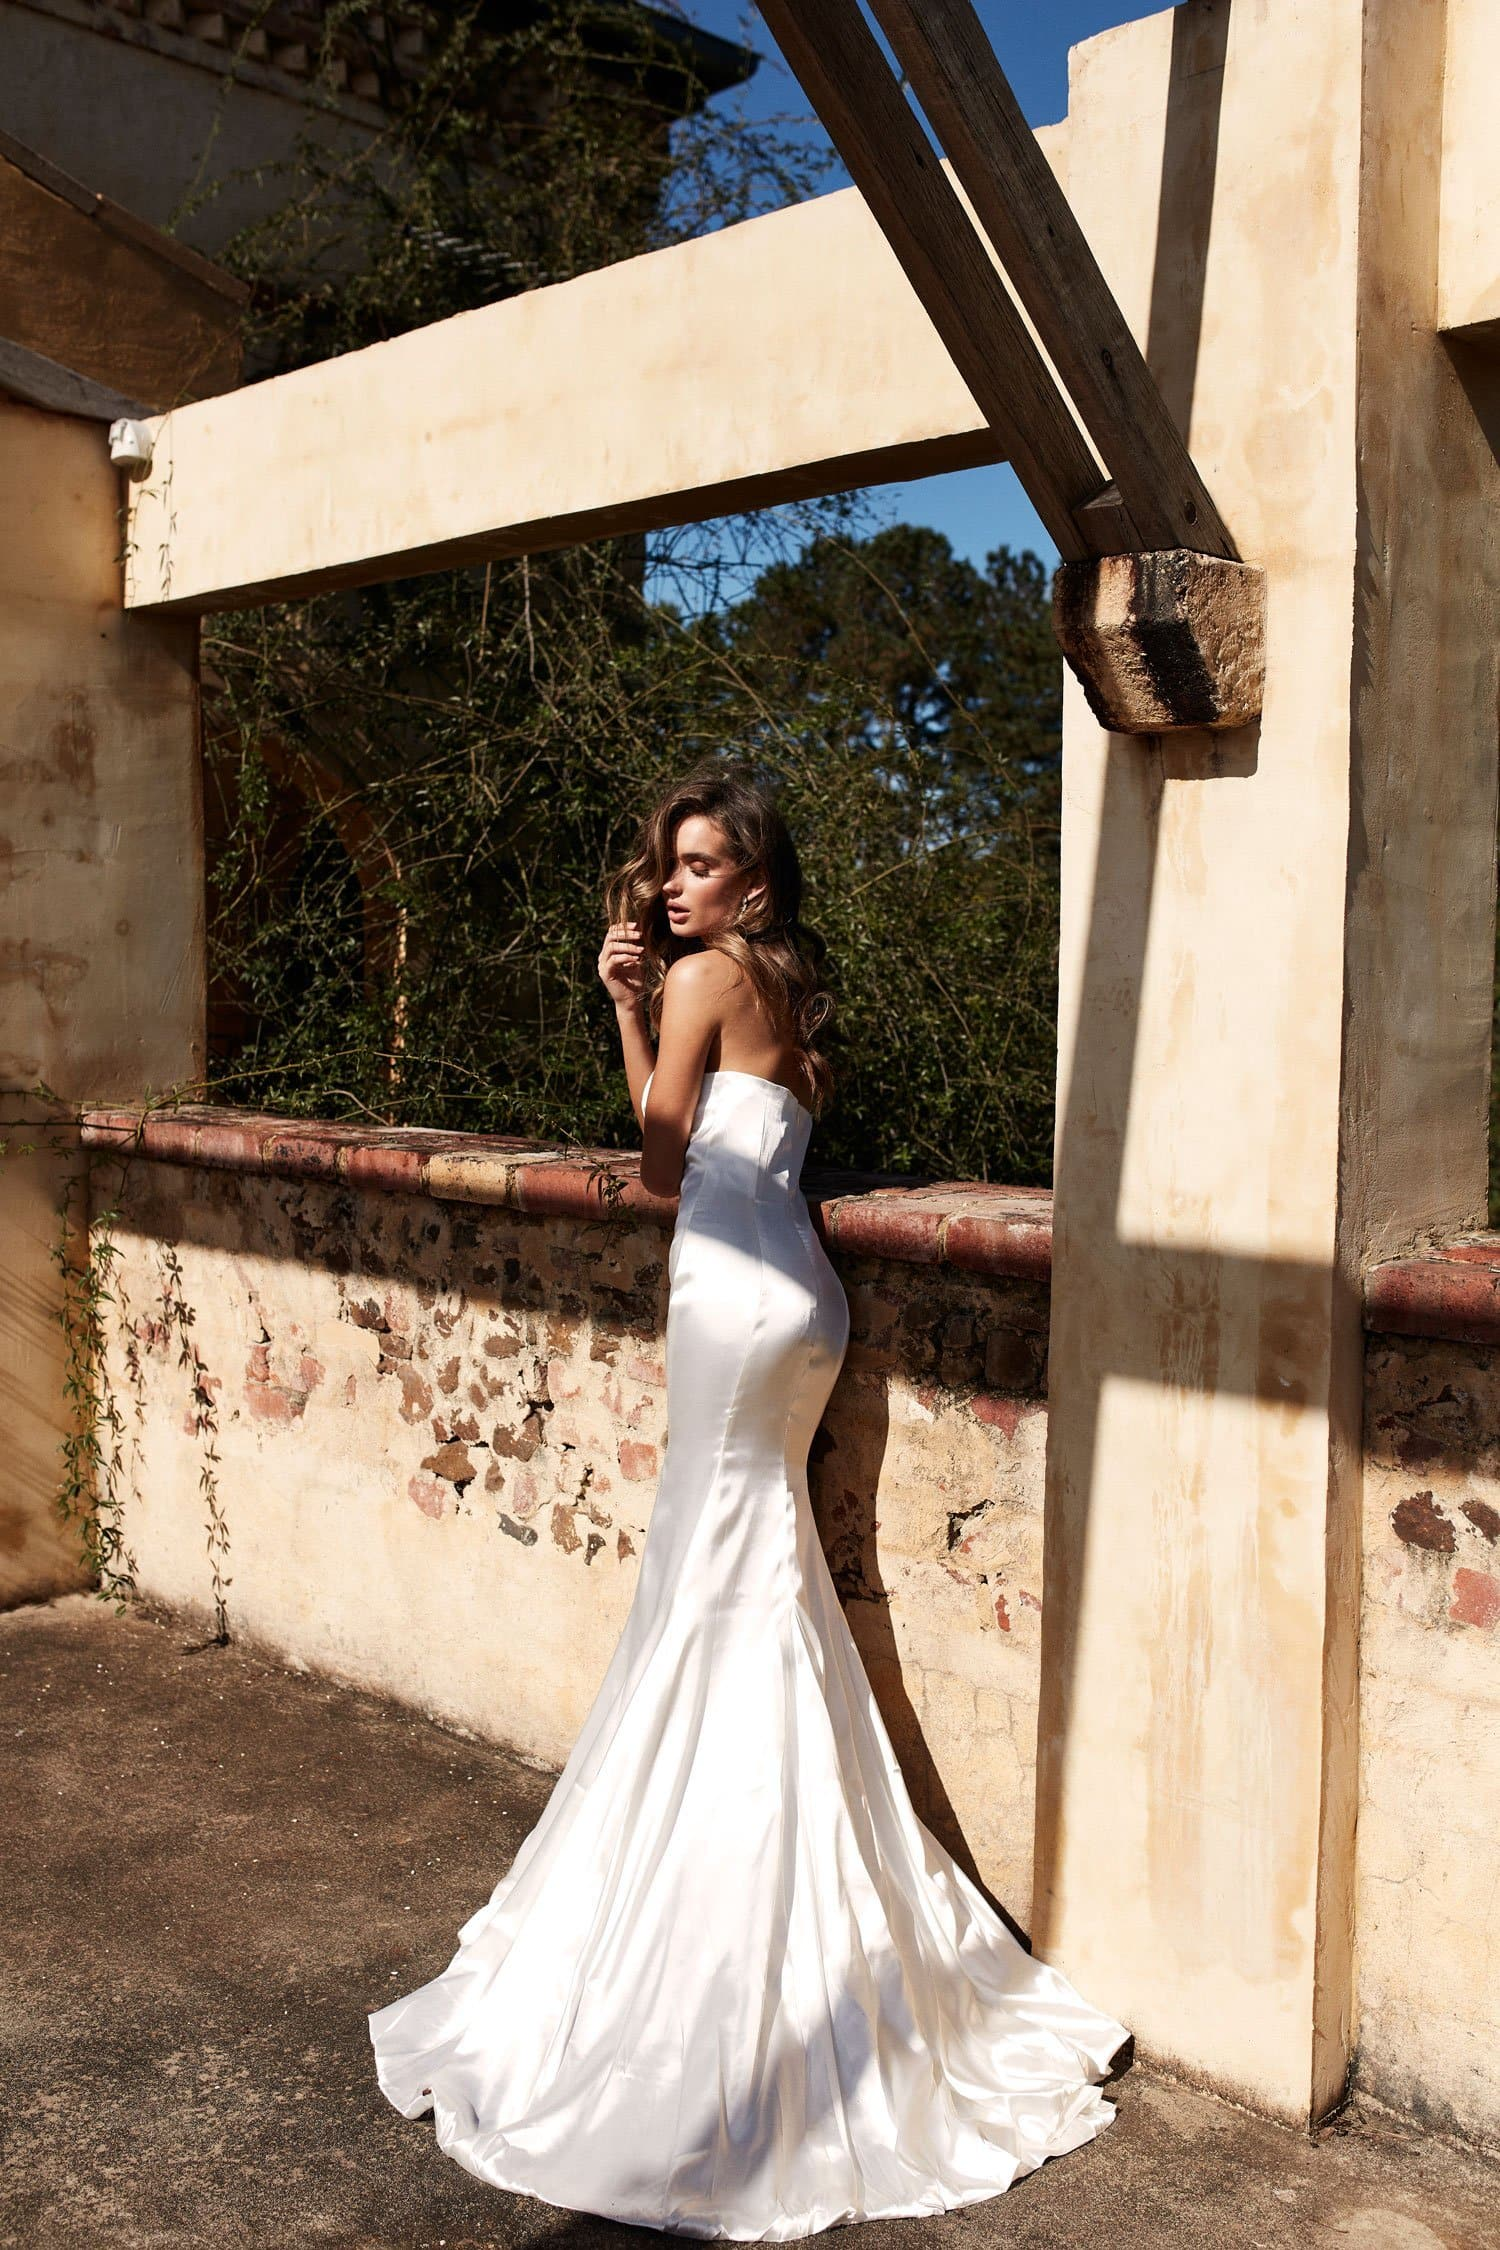 Aino Formal Dress - White Satin Strapless Full Length Gown